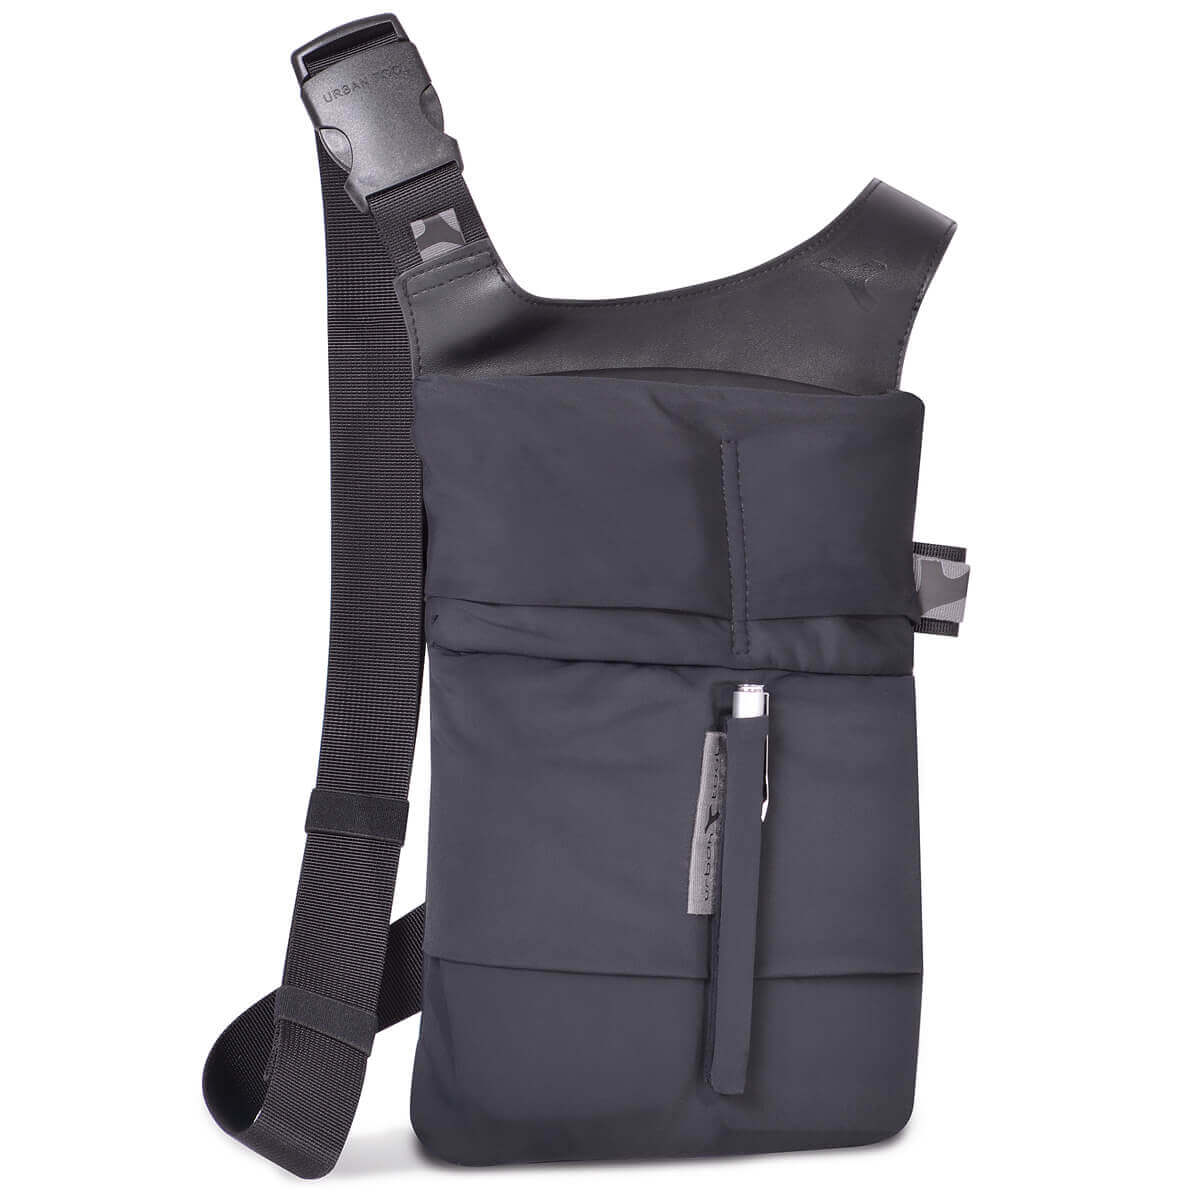 Tablet Sling Bag Stylish Shoulder And Smartphone Urban Tool Slotbar